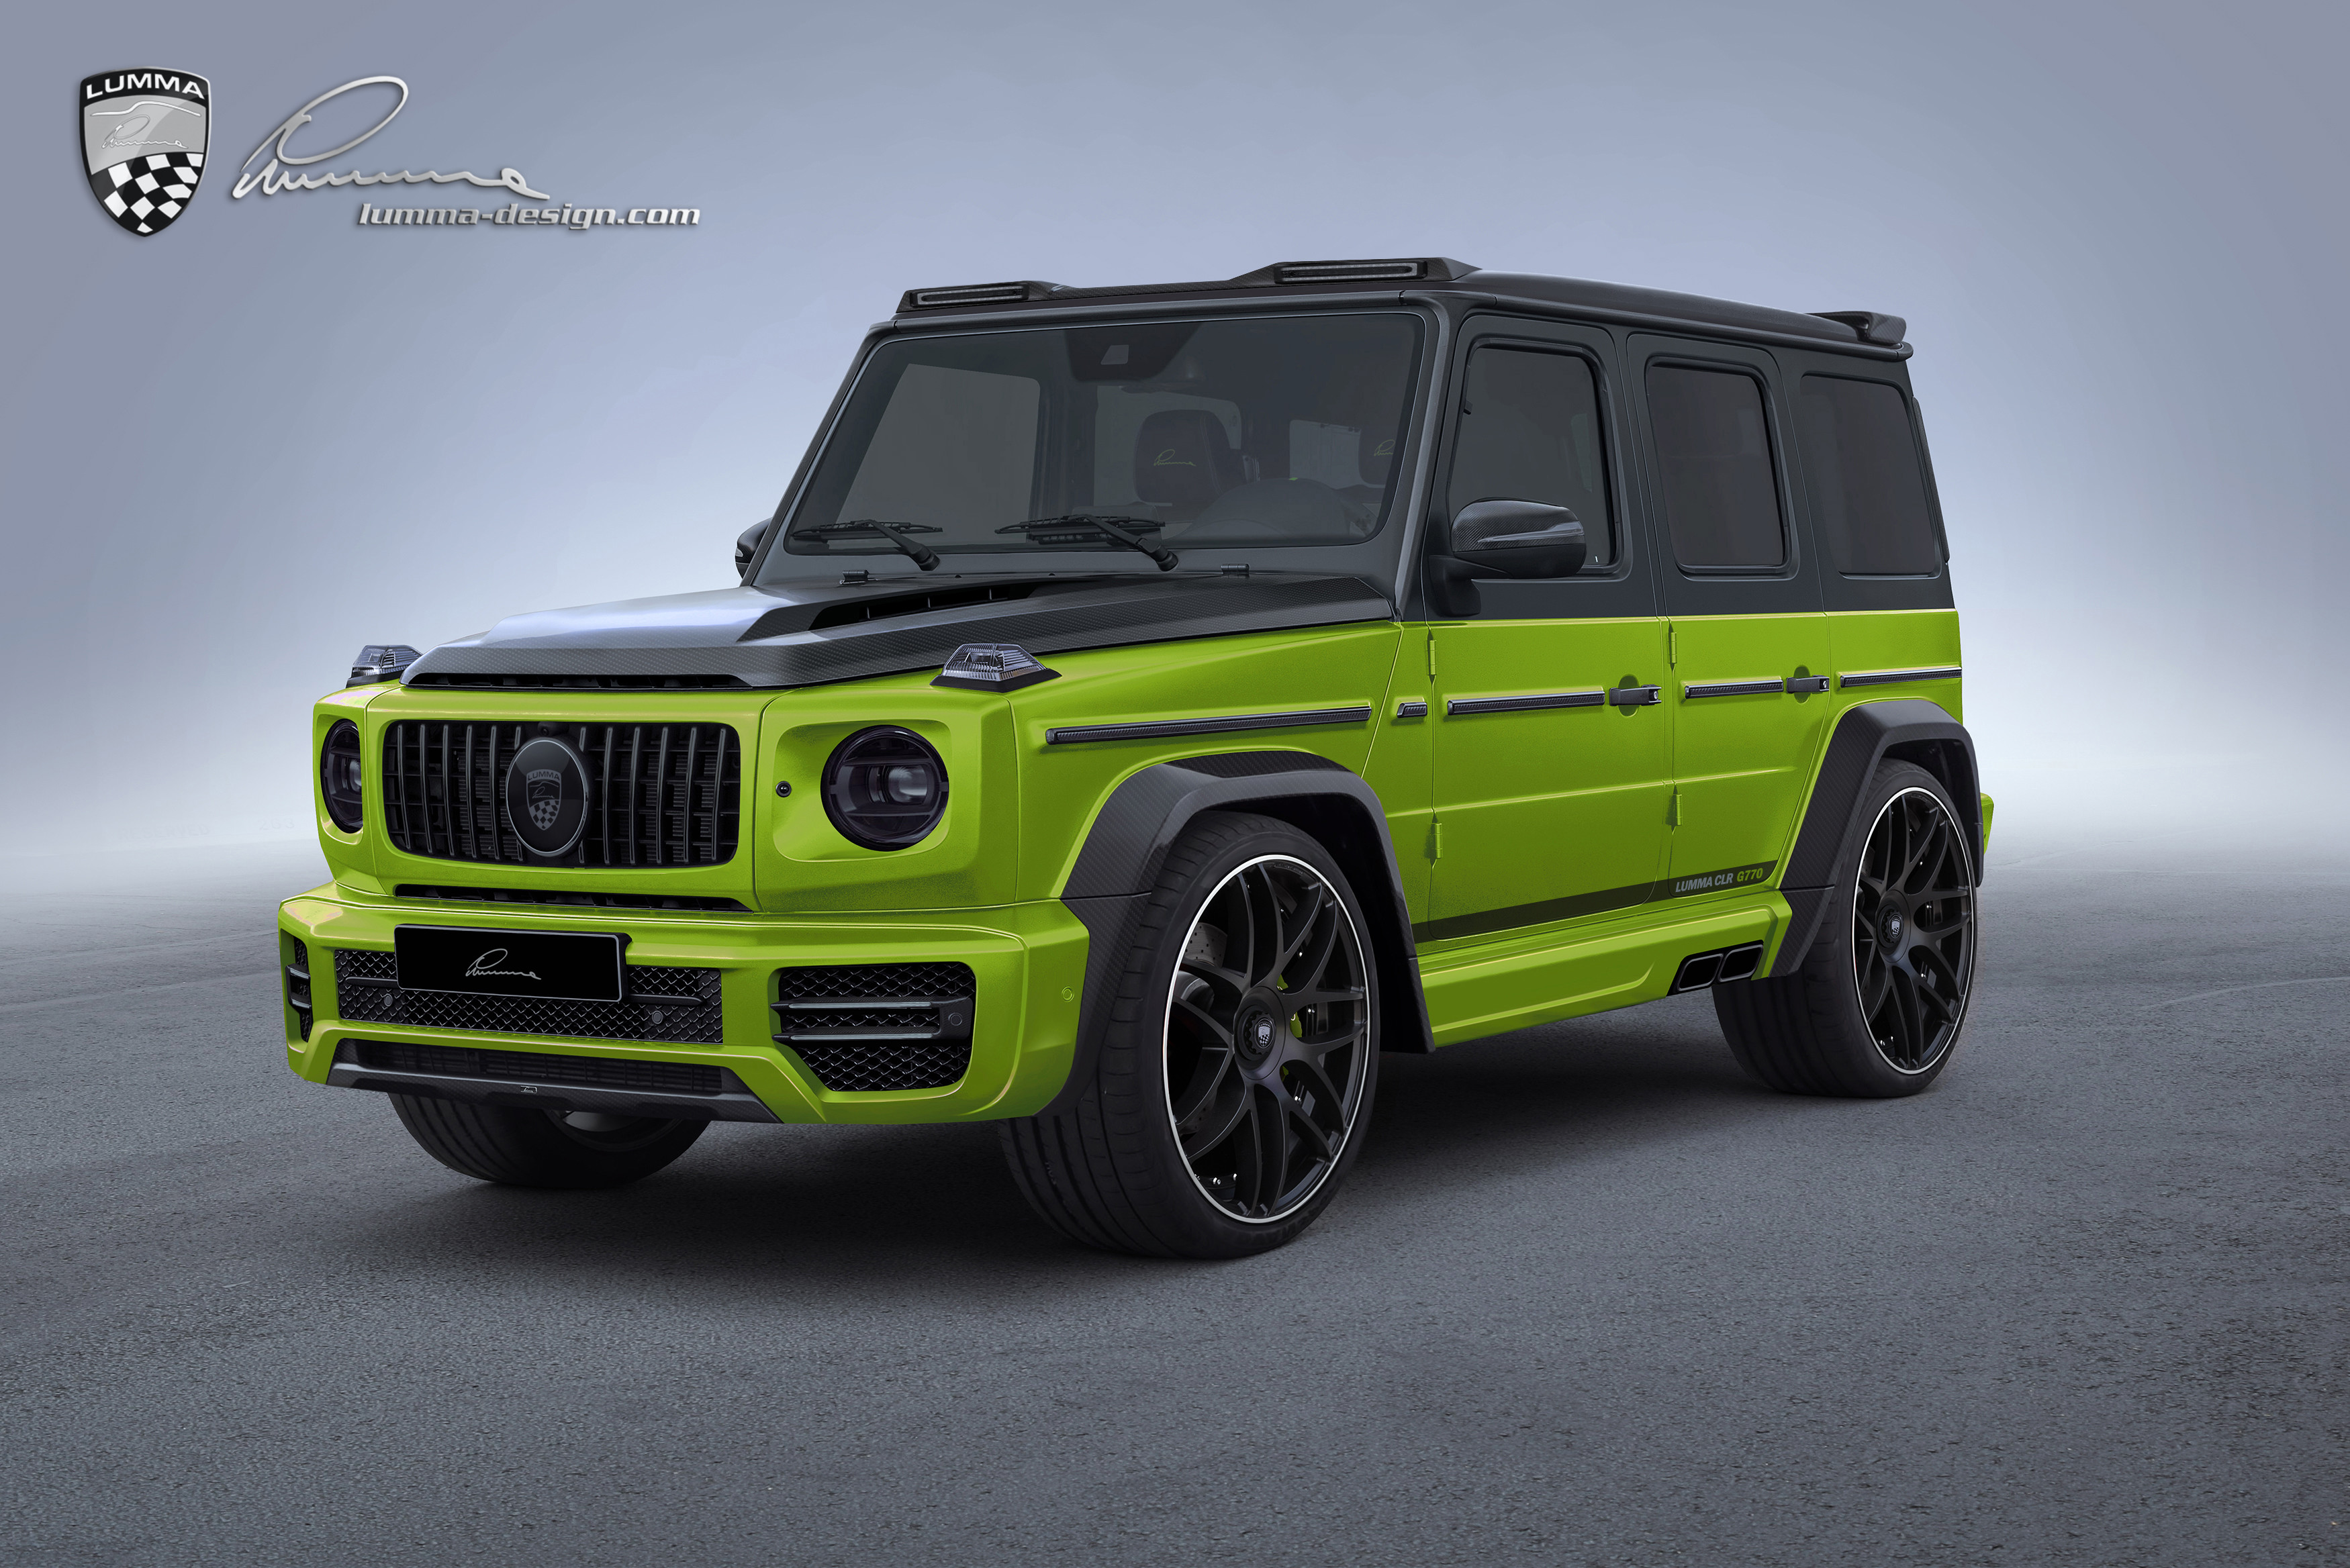 2019 G Class Clr G770 Body Kit Previewed By Lumma Design